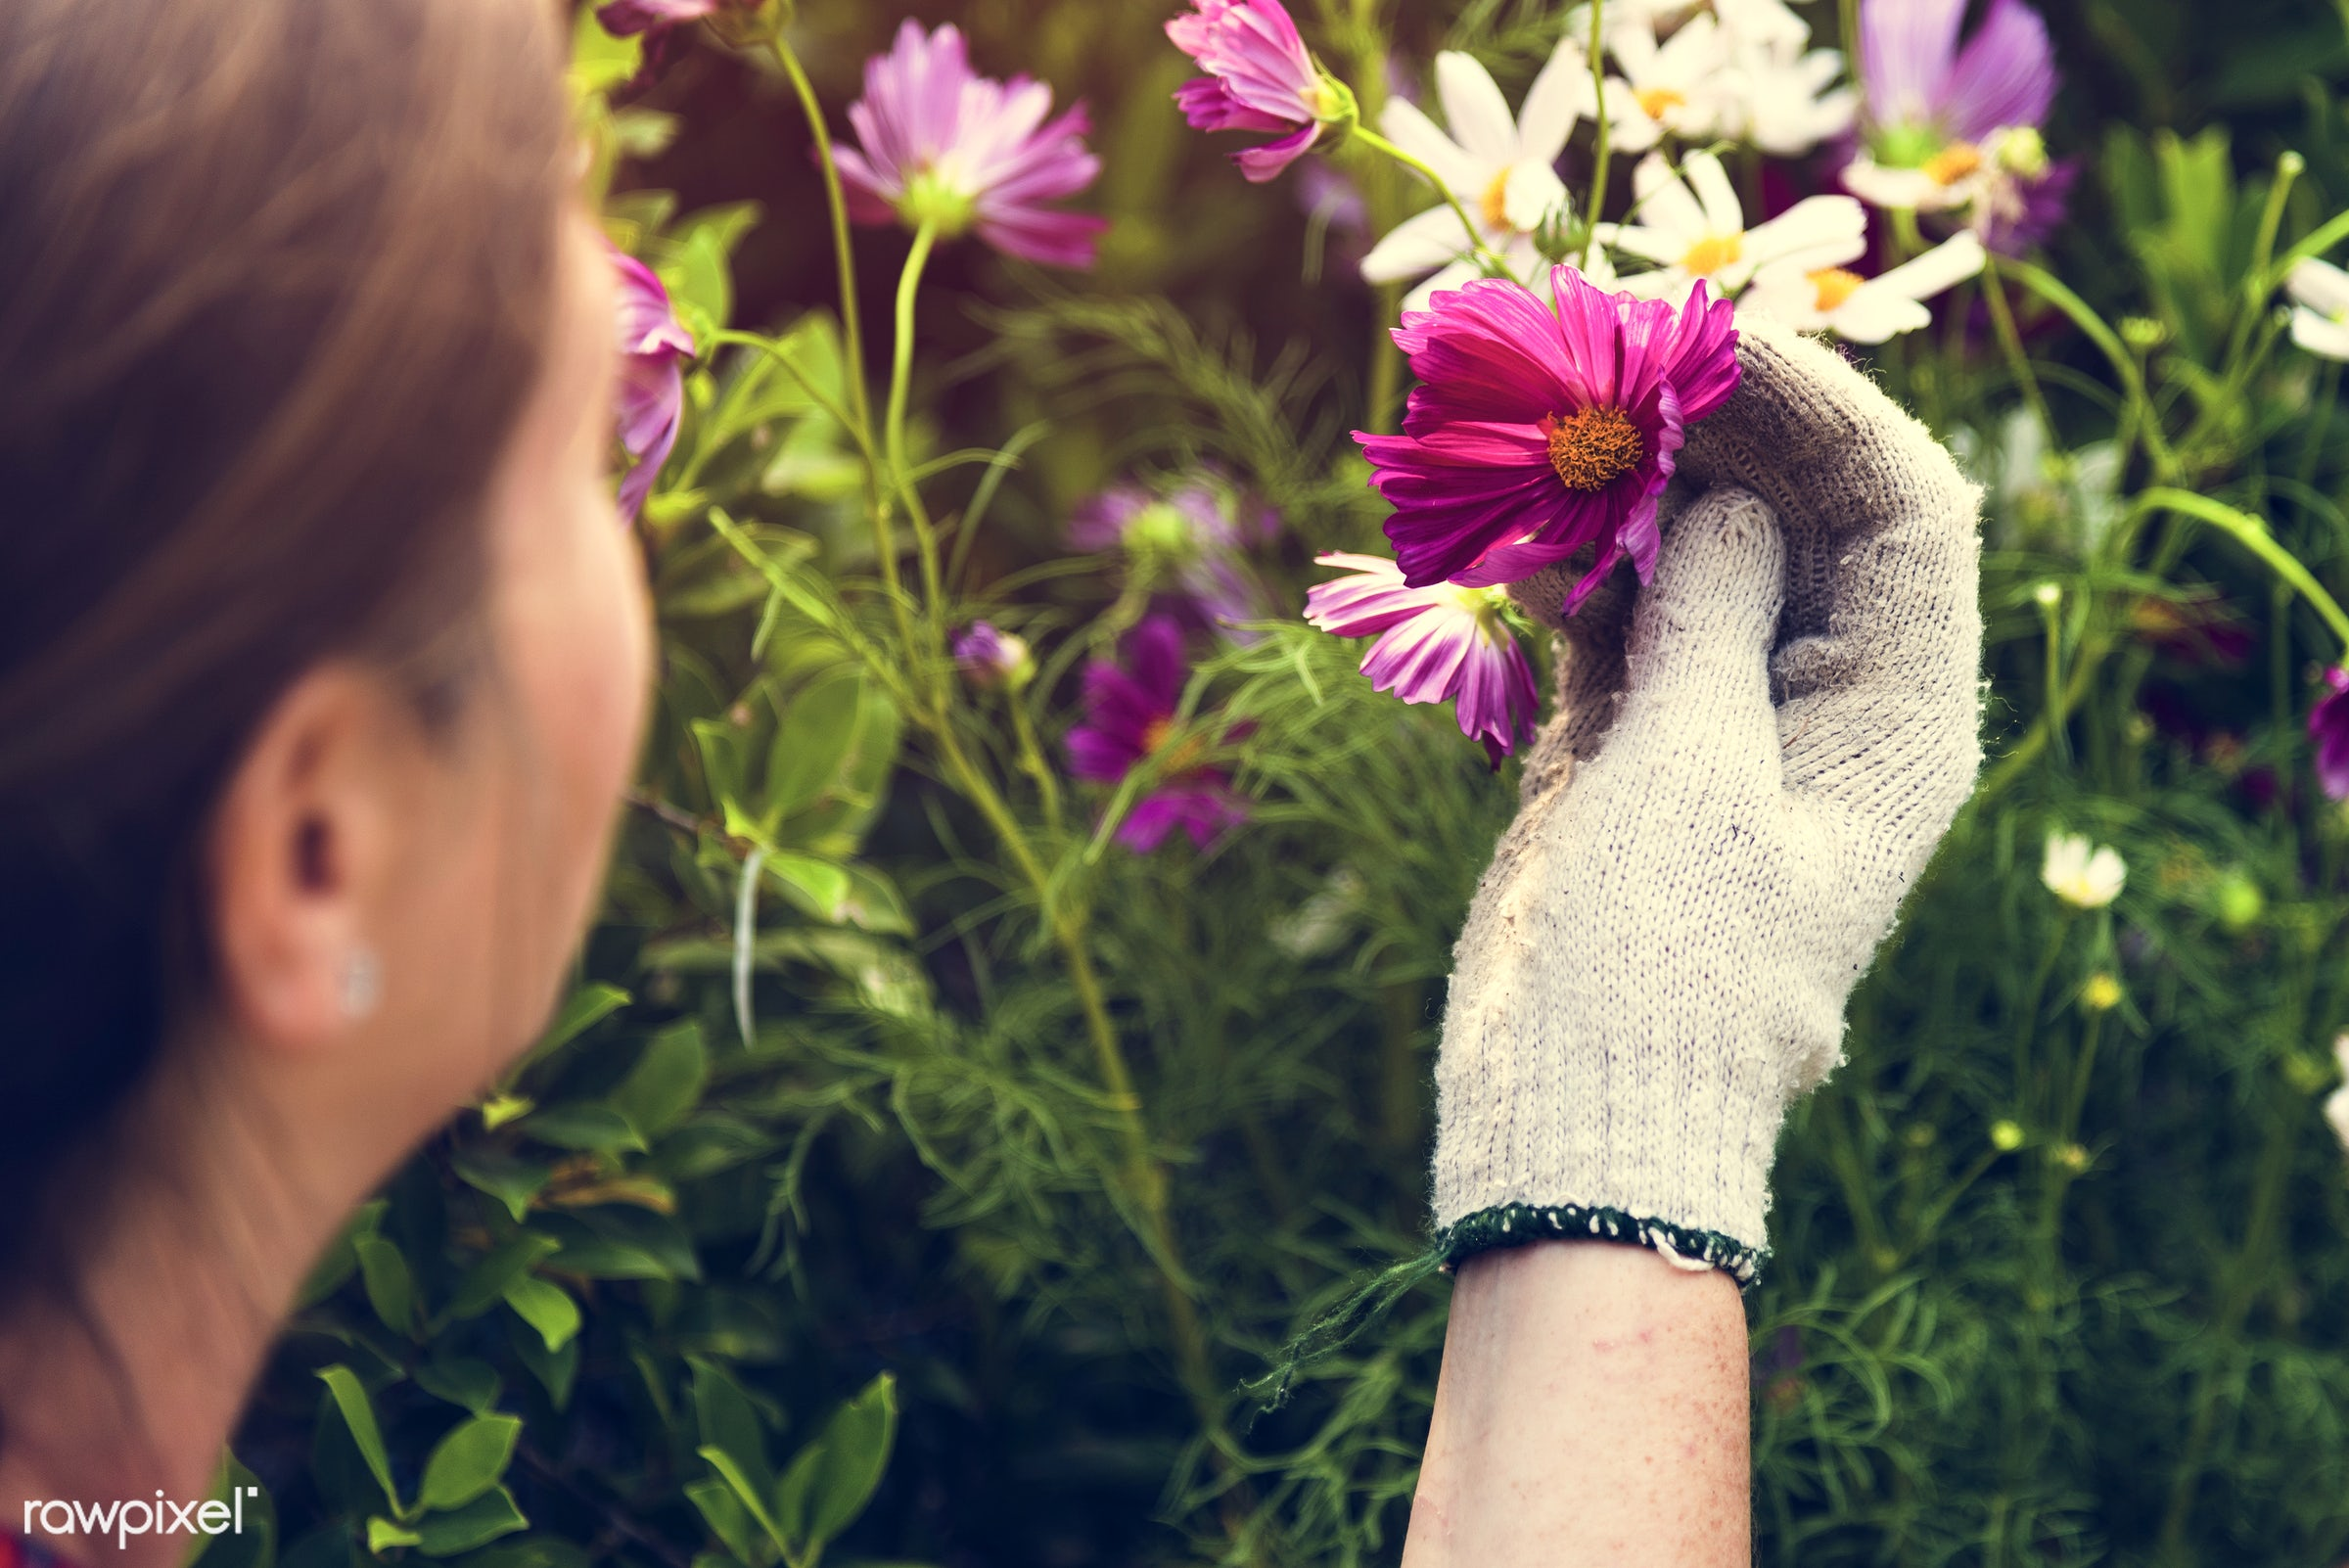 plant, relax, beauty, hand, nature, farmer, fresh, woman, activity, flower, flora, hobby, agriculture, planting, leisure,...